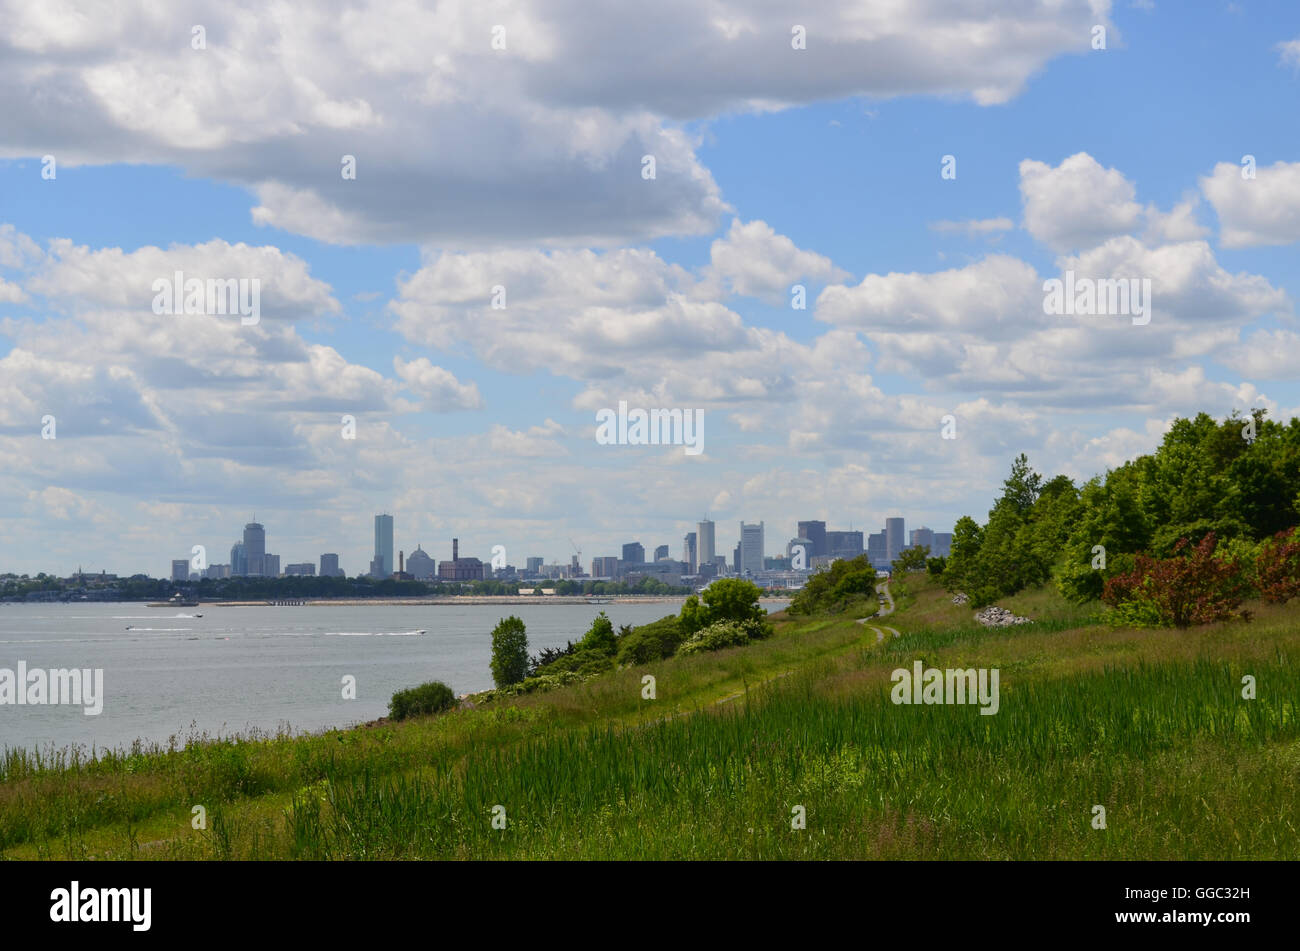 Gorgeous city views from the Boston Harbor Islands. - Stock Image